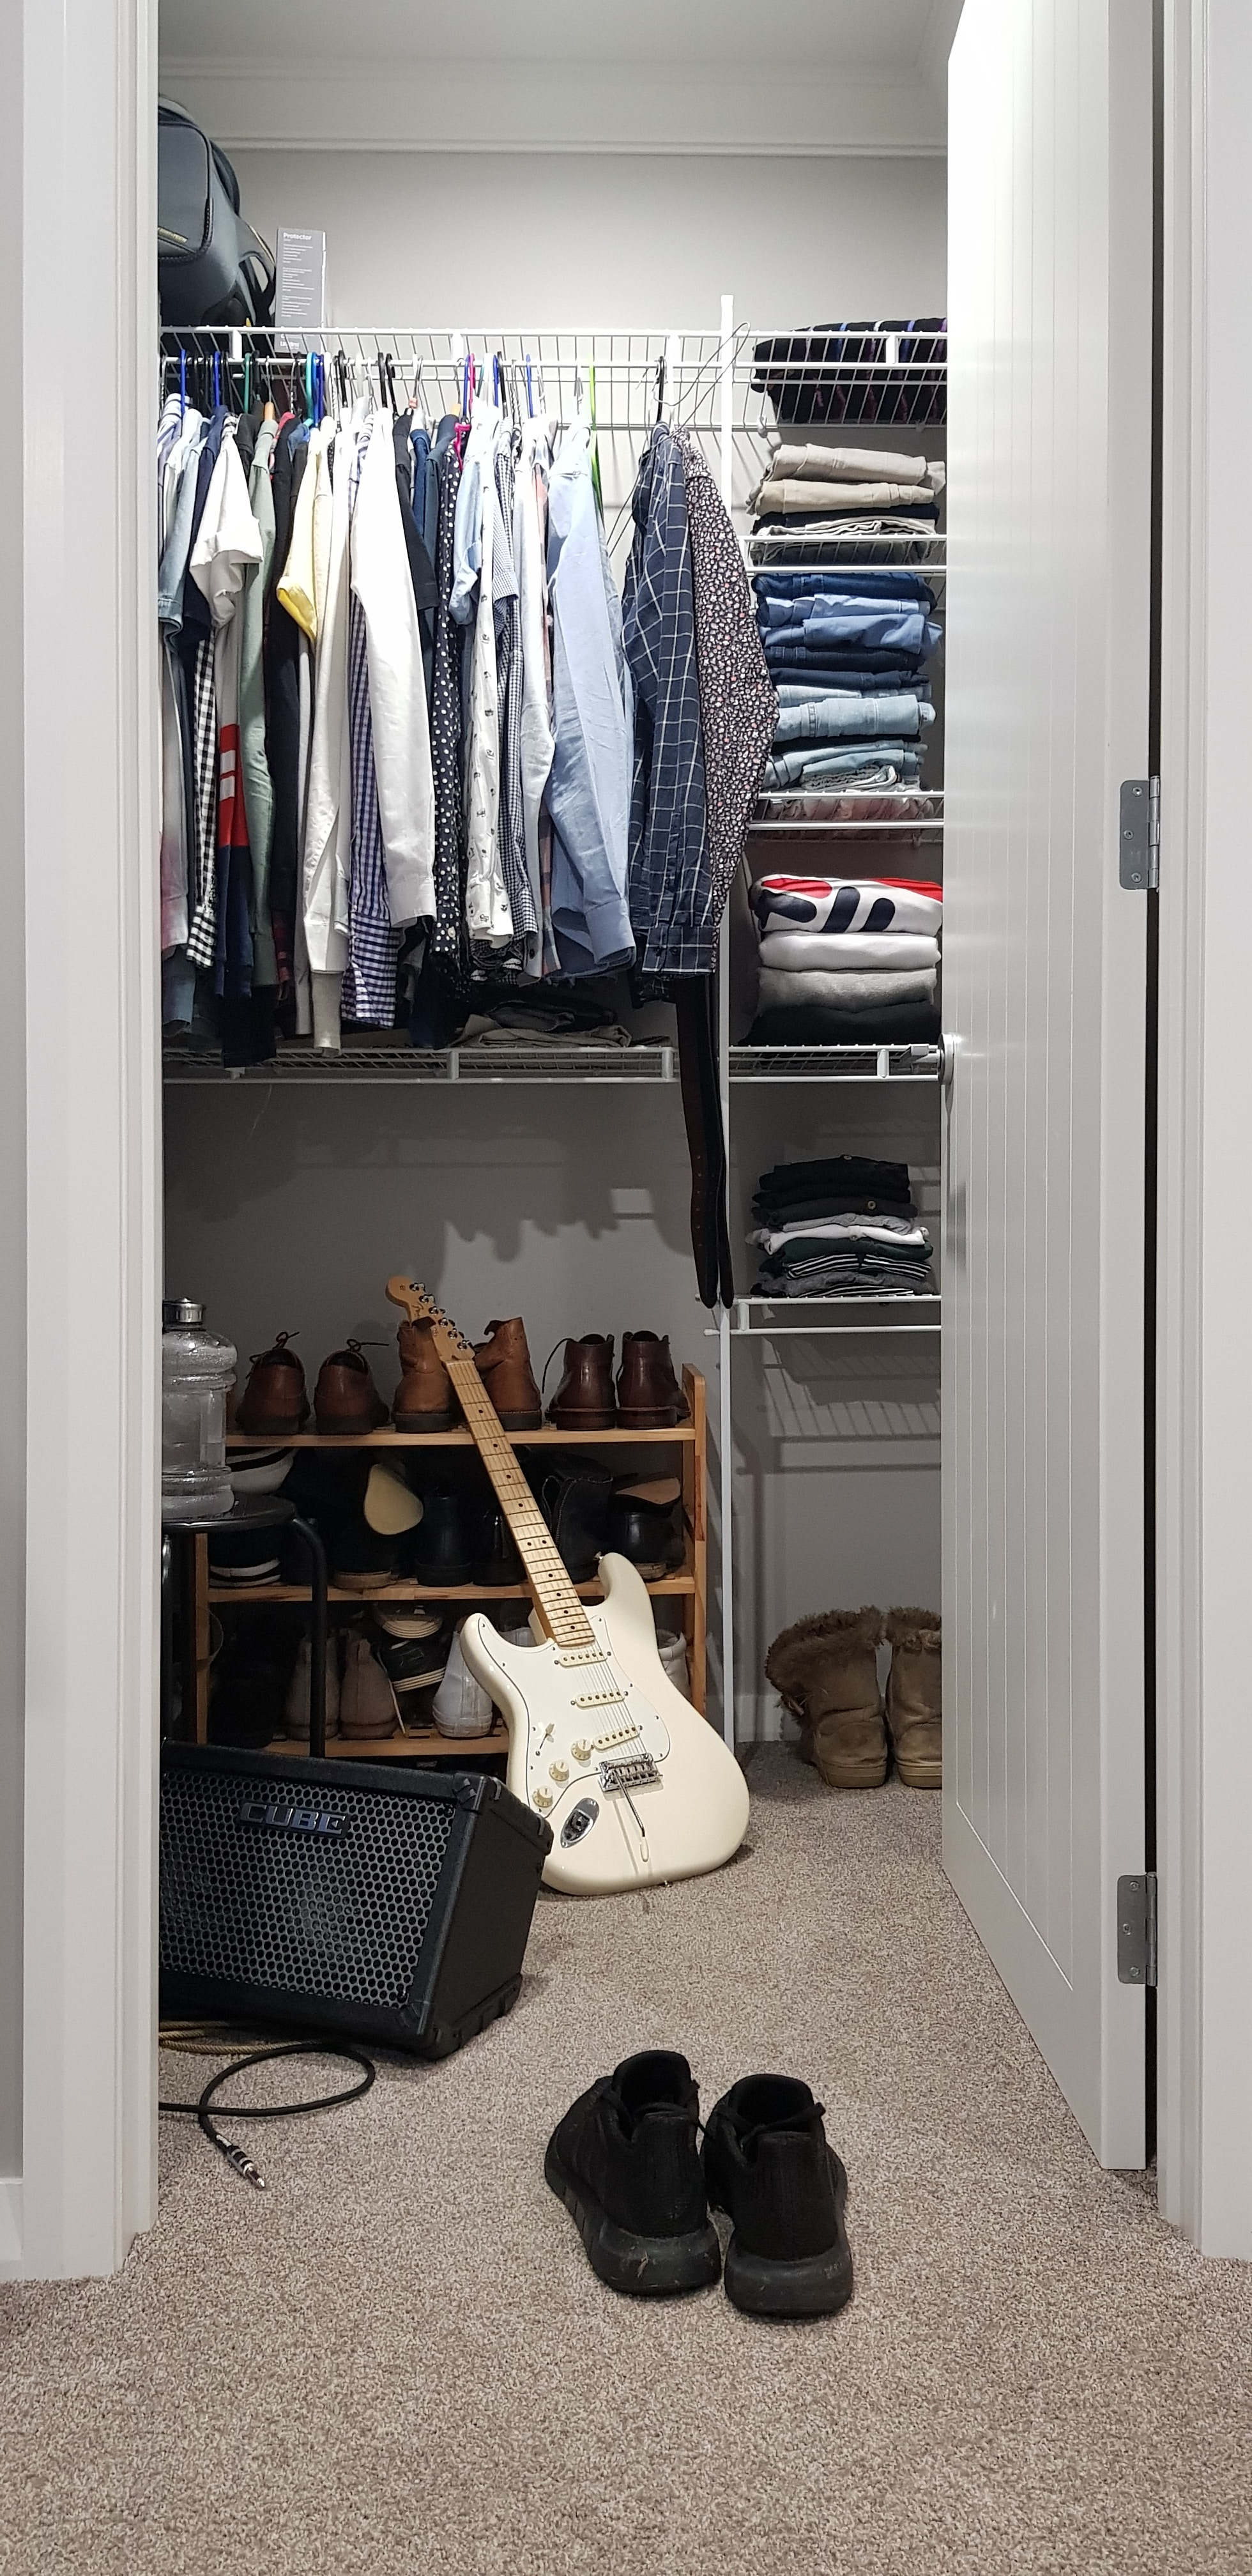 Organize Your Life…One Shoe at a Time